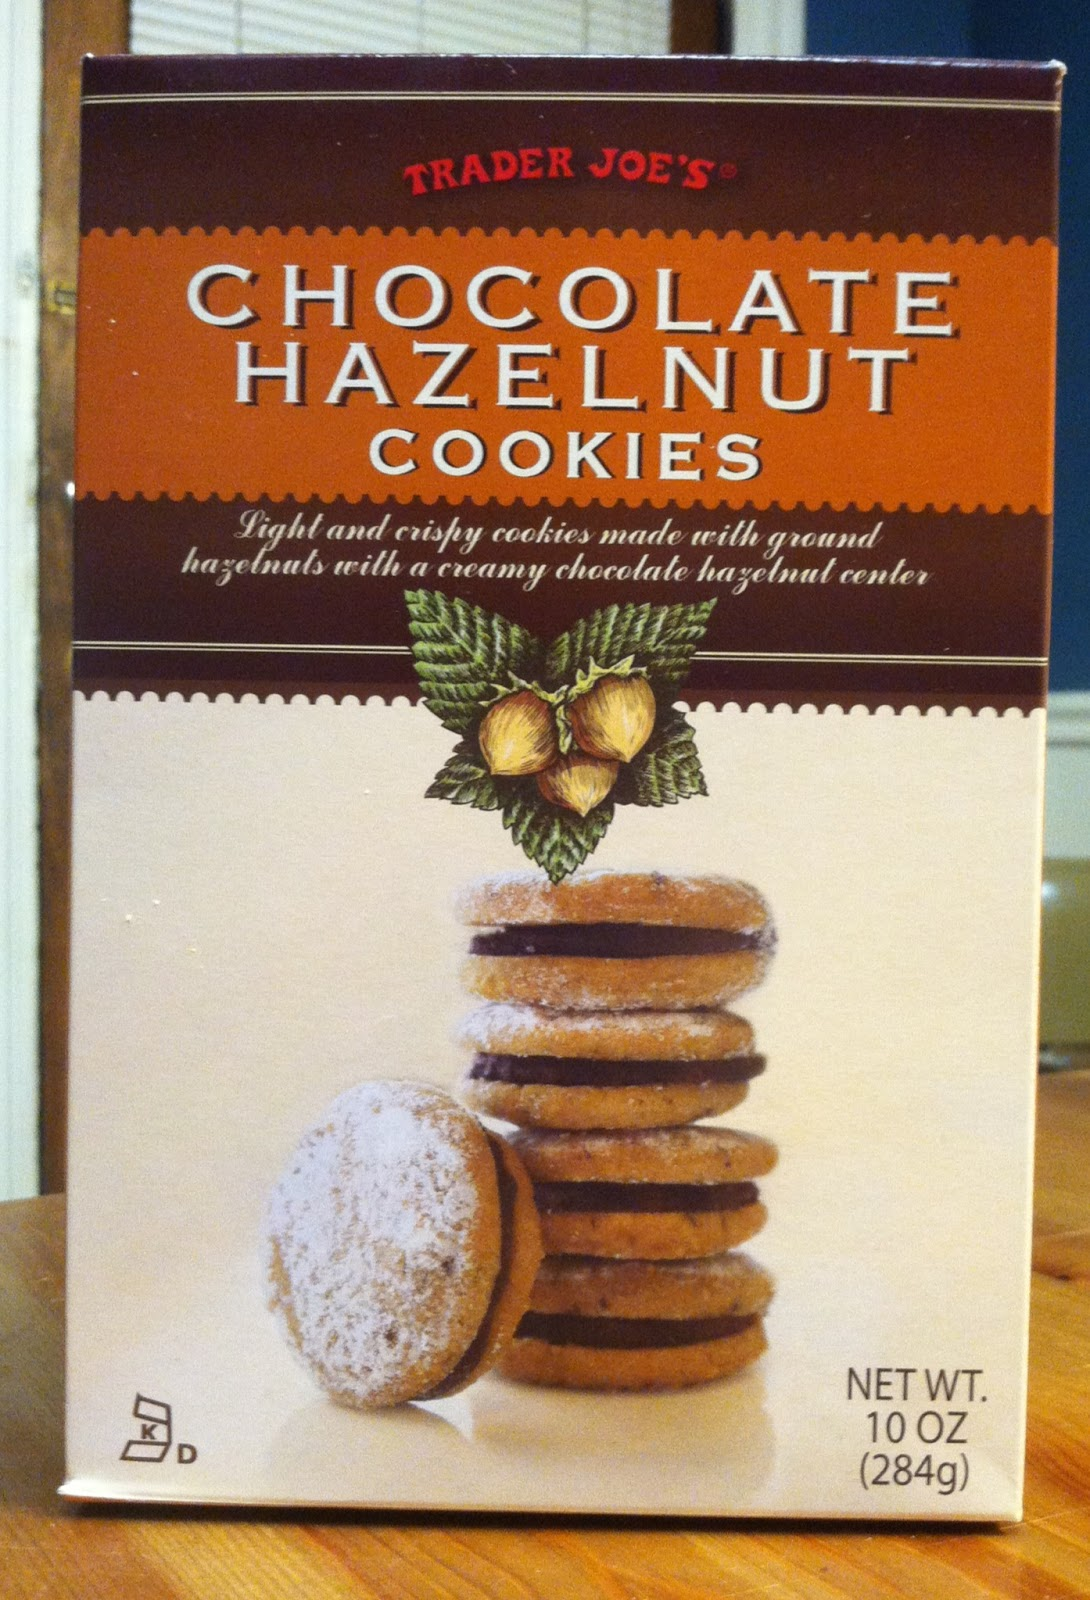 Chocolate. Hazelnut. Cookies. Let's repeat that again, and let it sink ...